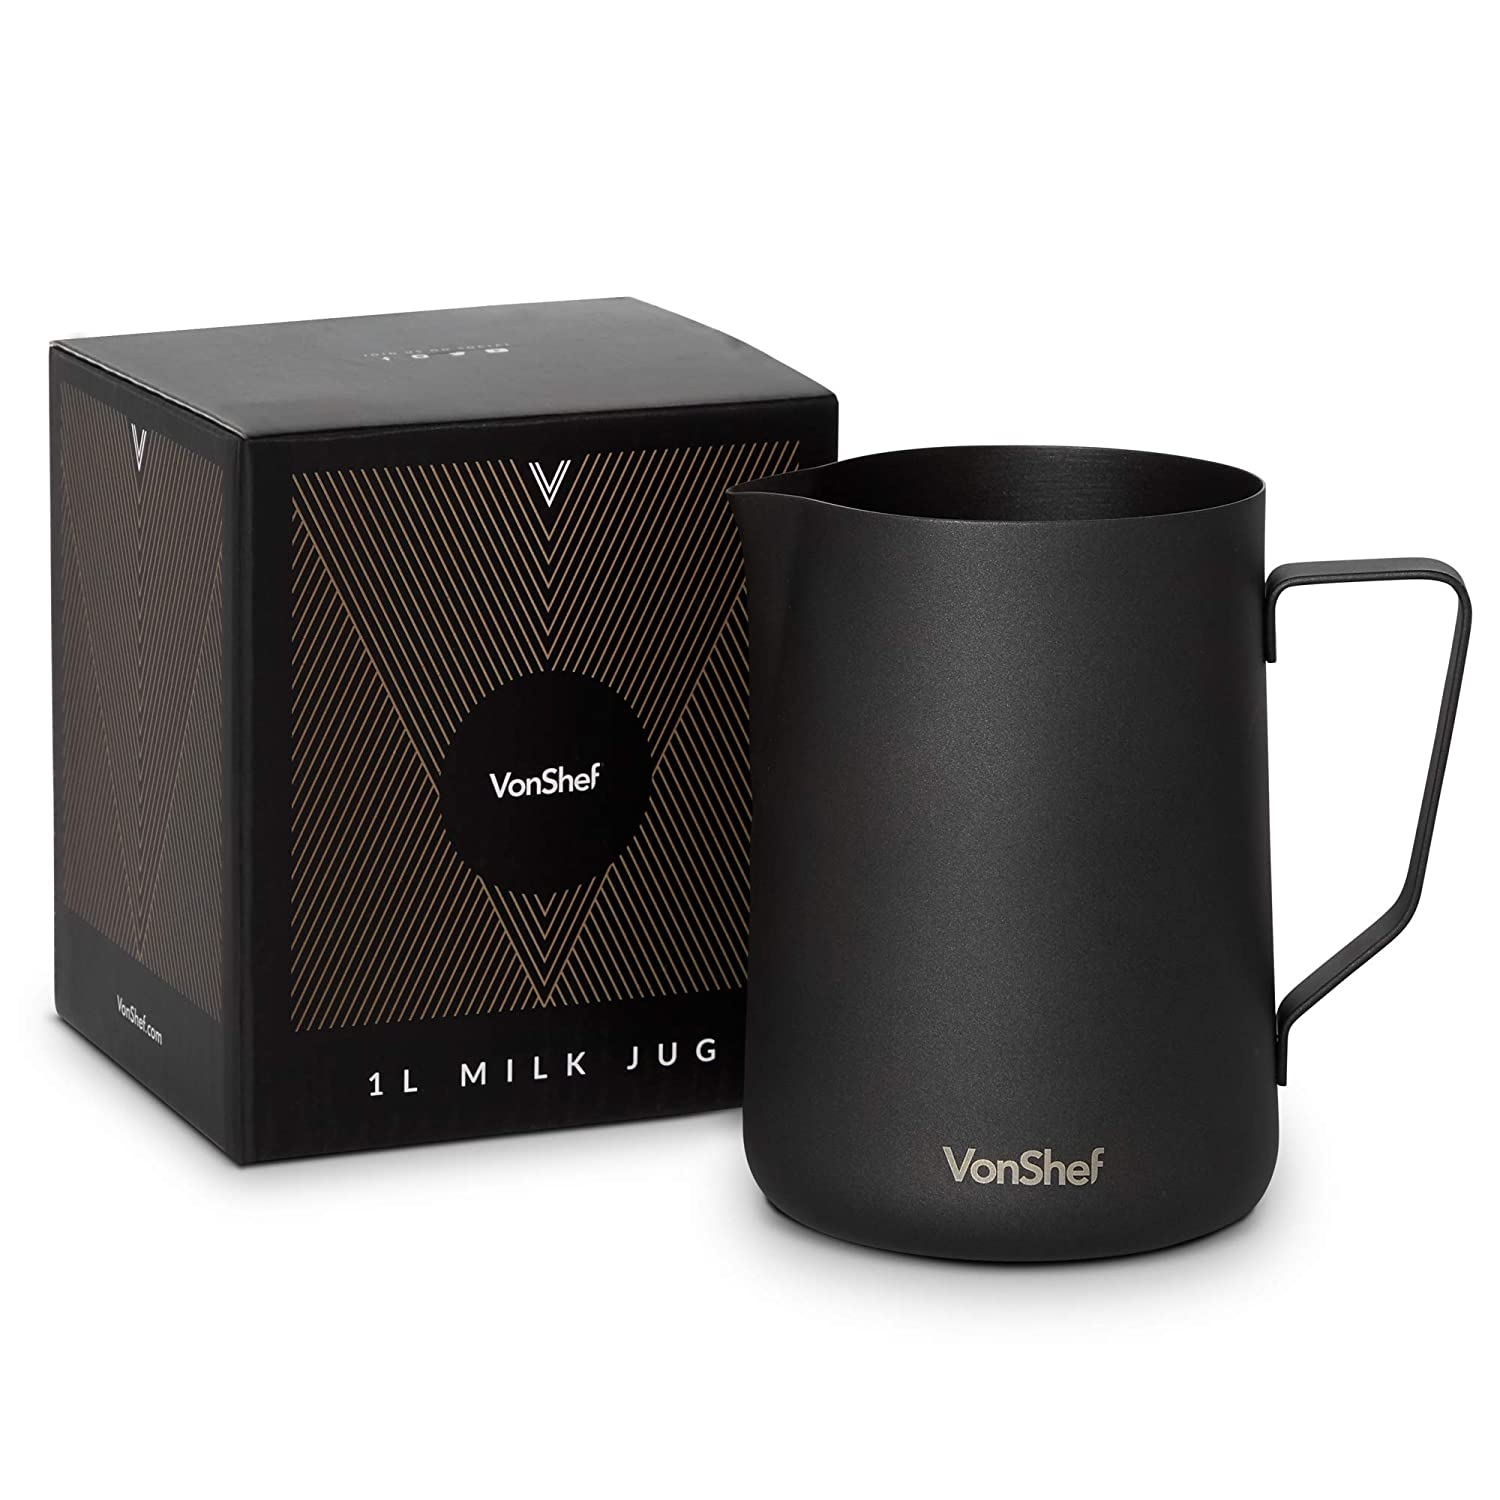 VonShef 34 Ounce Milk Frothing Pitcher Jug, Matte Black Stainless Steel, Suitable for Coffee, Latte and Frothing Milk